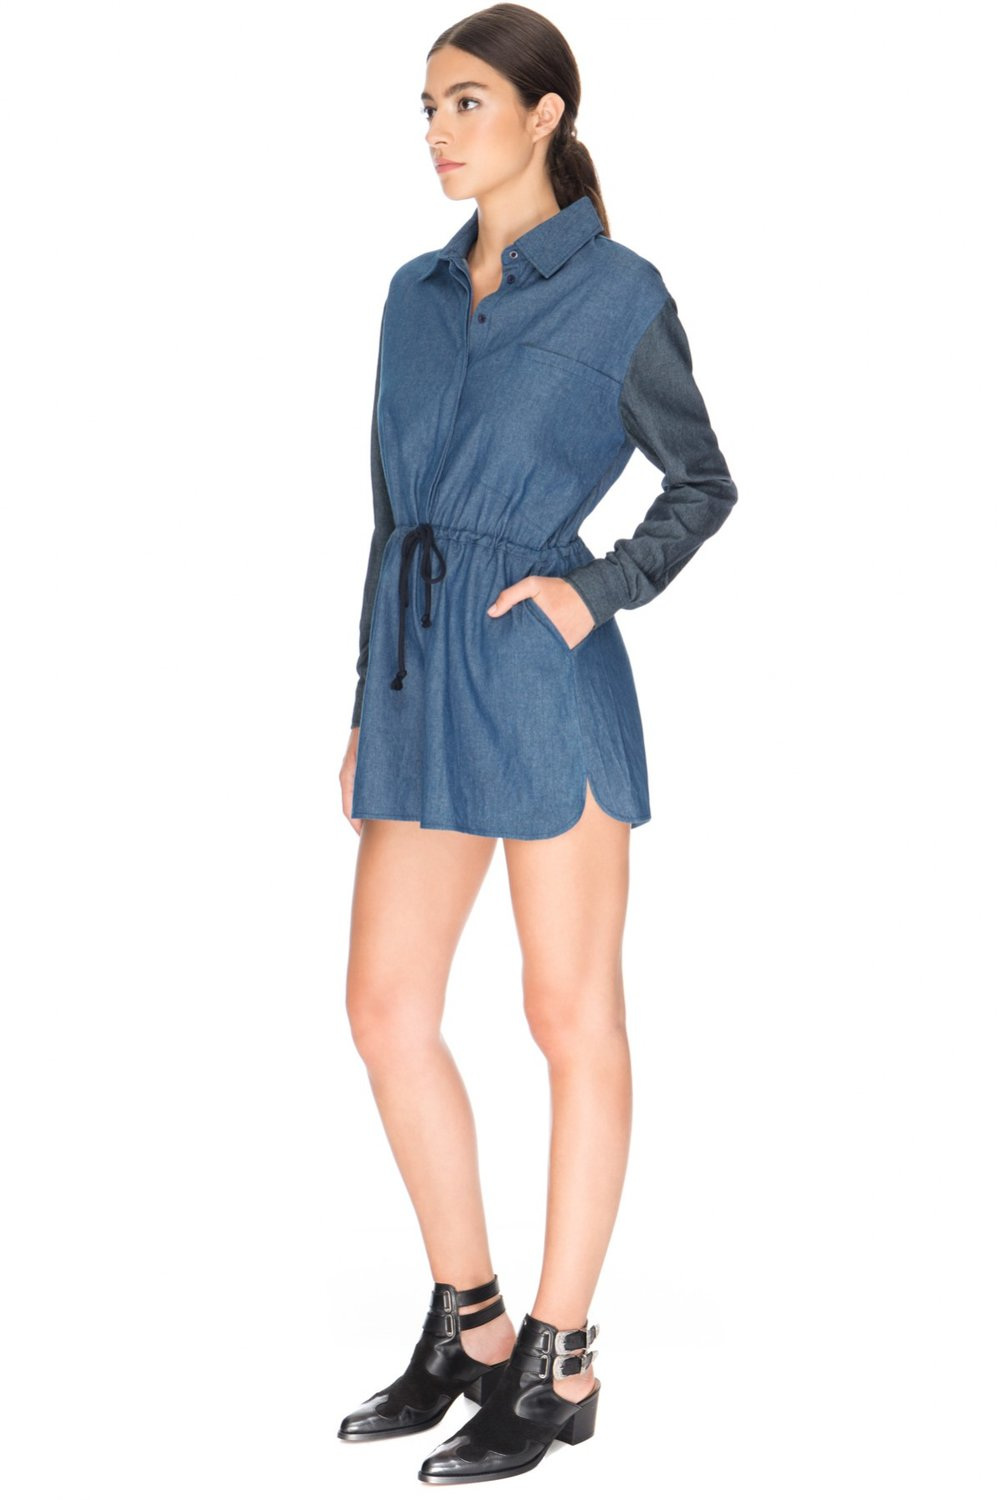 burningcolourplaysuit-denim-5-edit.jpg